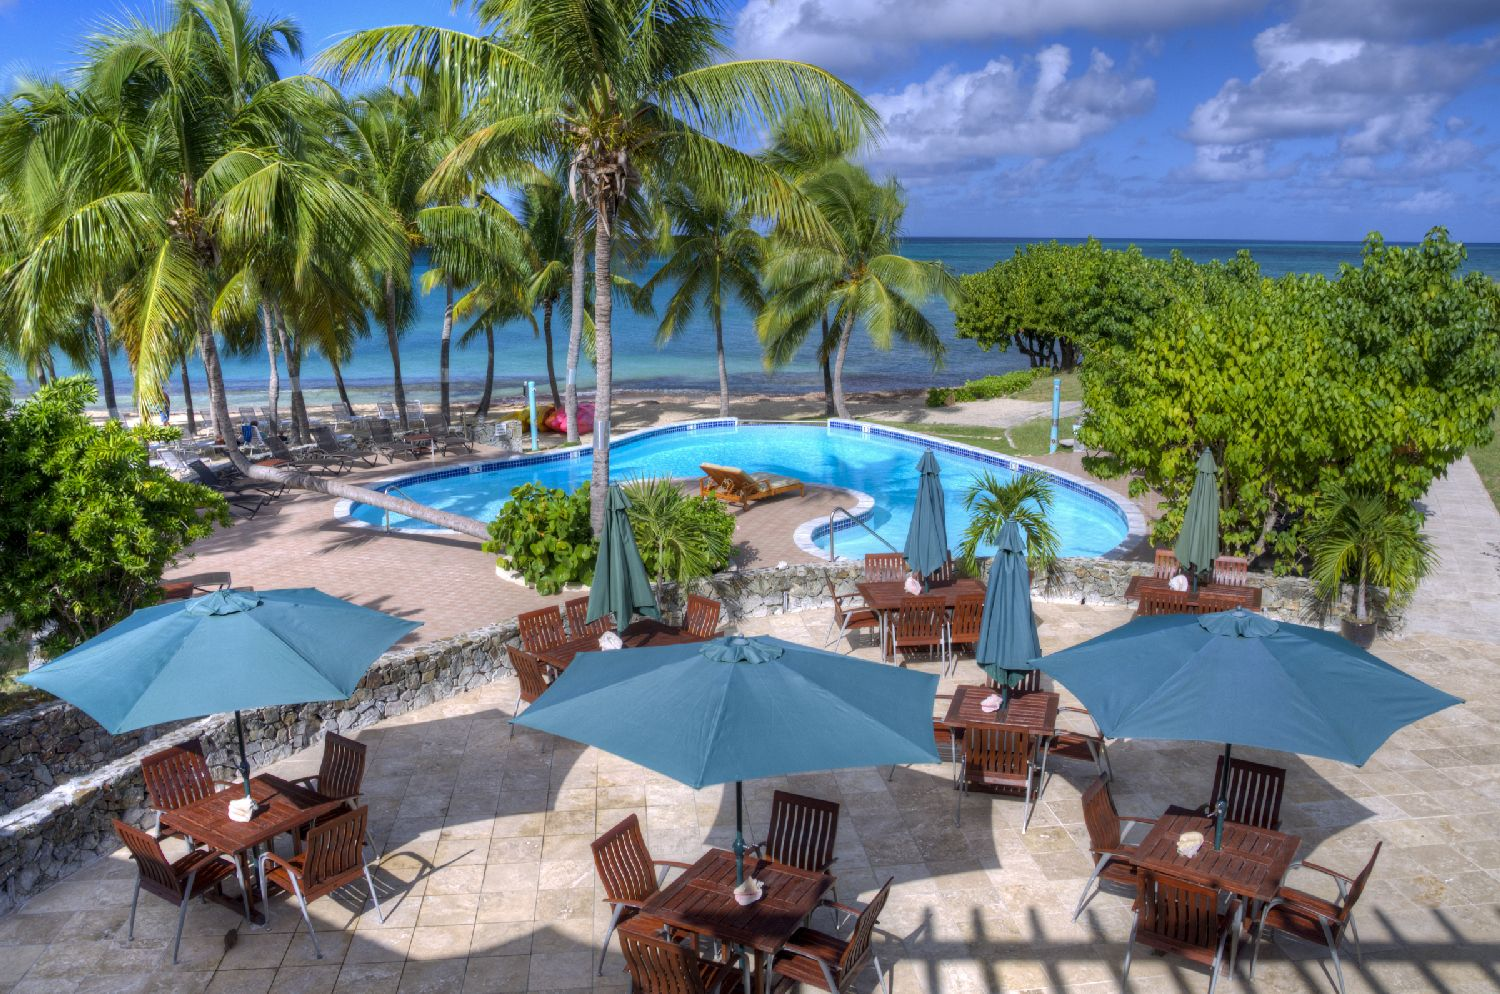 Grotto Pools at The Buccaneer Resort, St. Croix Photo by Steve Simonsen Photography